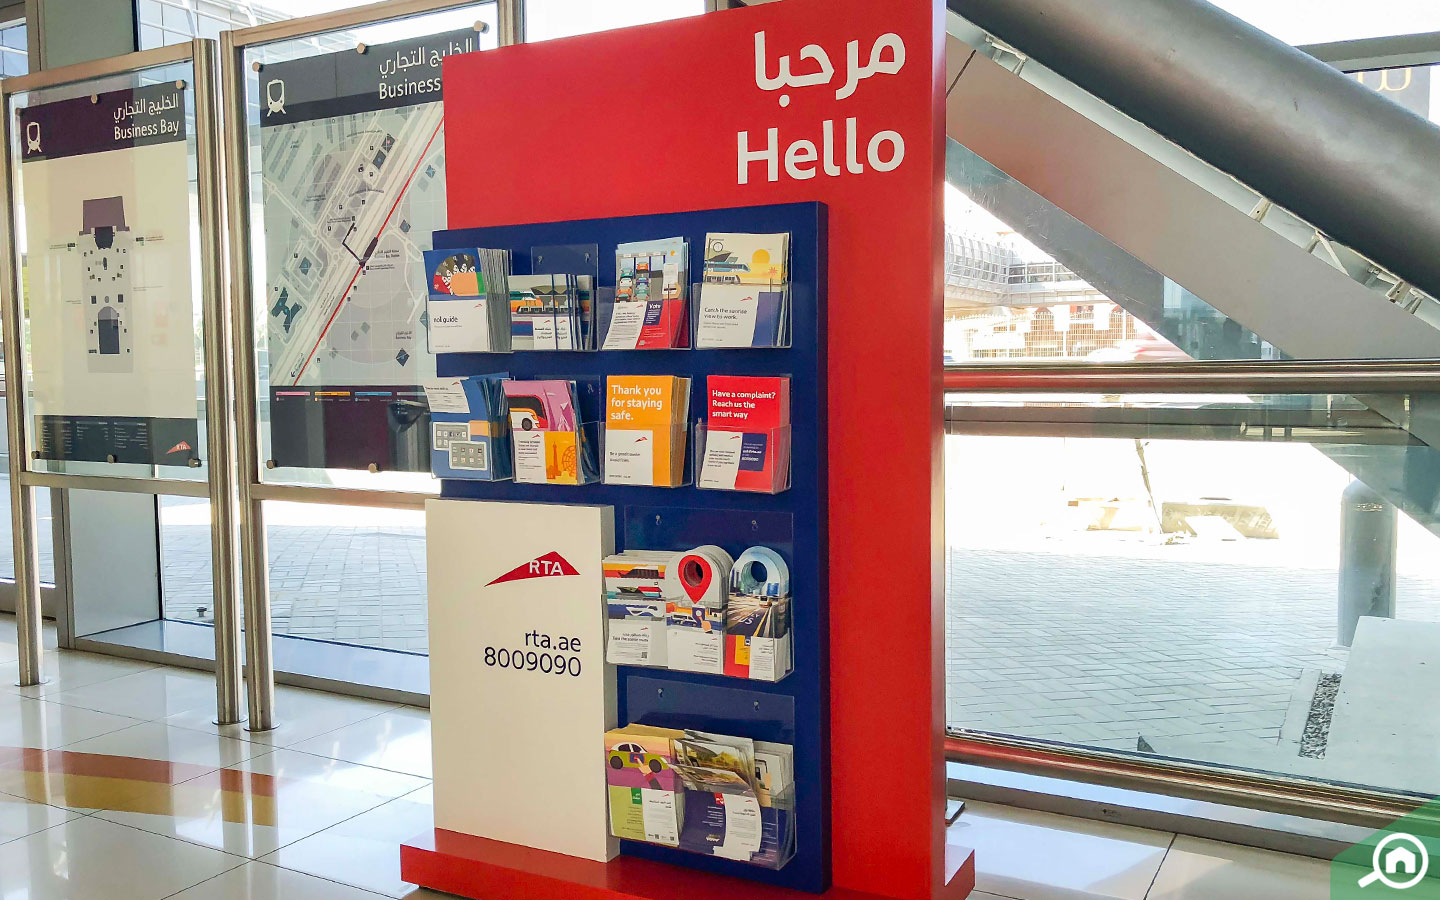 Using RTA Services in Dubai: Free RTA Apps & Nol Cards Uses